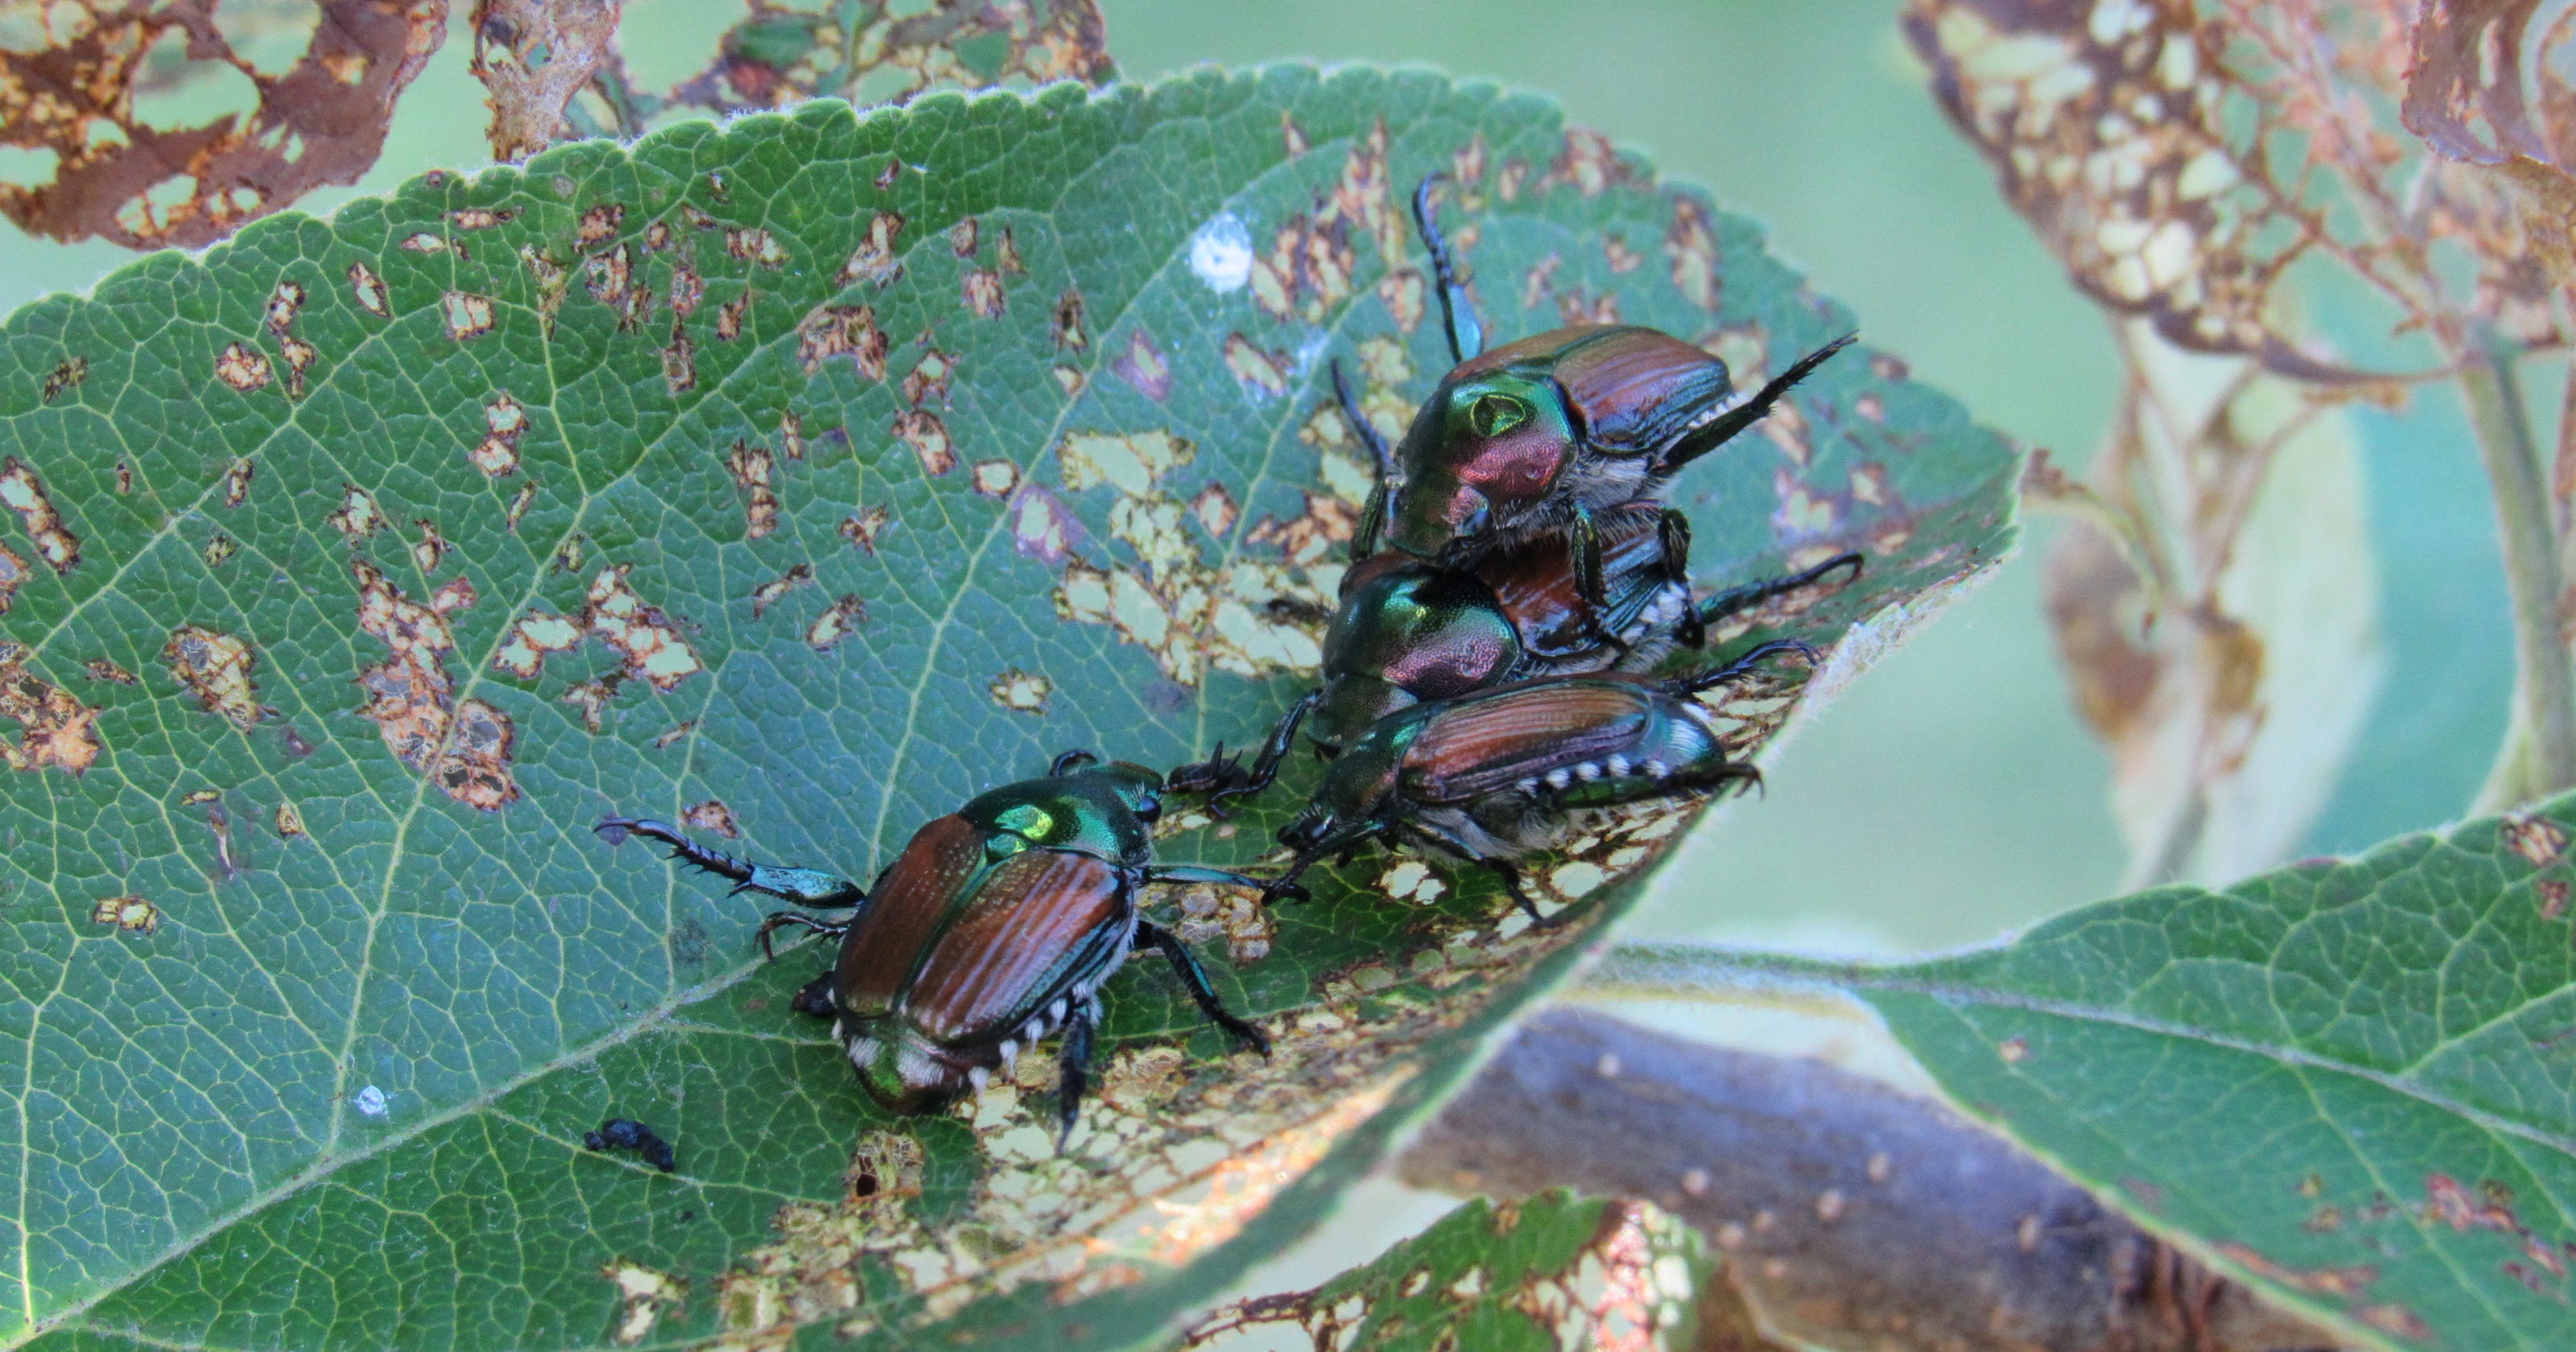 Japanese beetles invade central Wisconsin